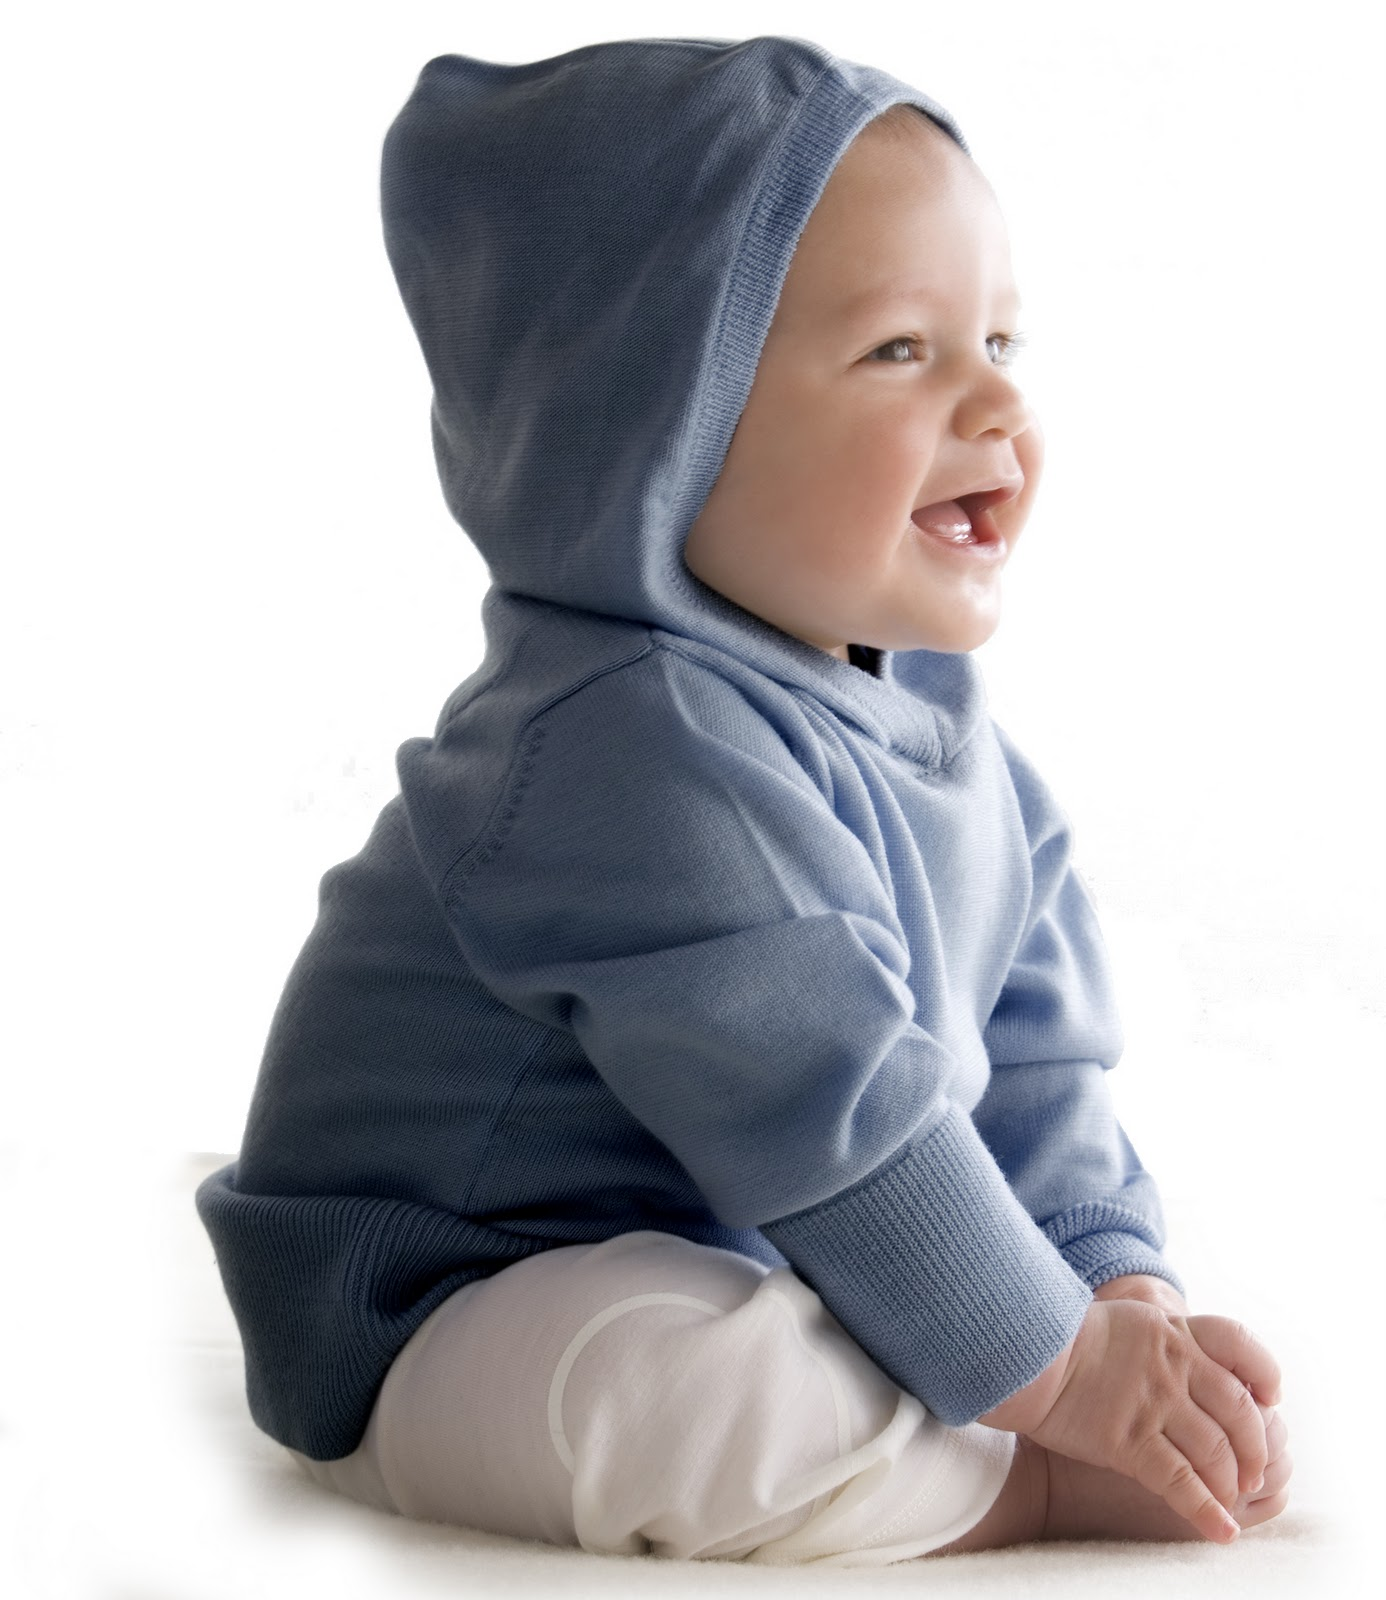 Toddler hoodies